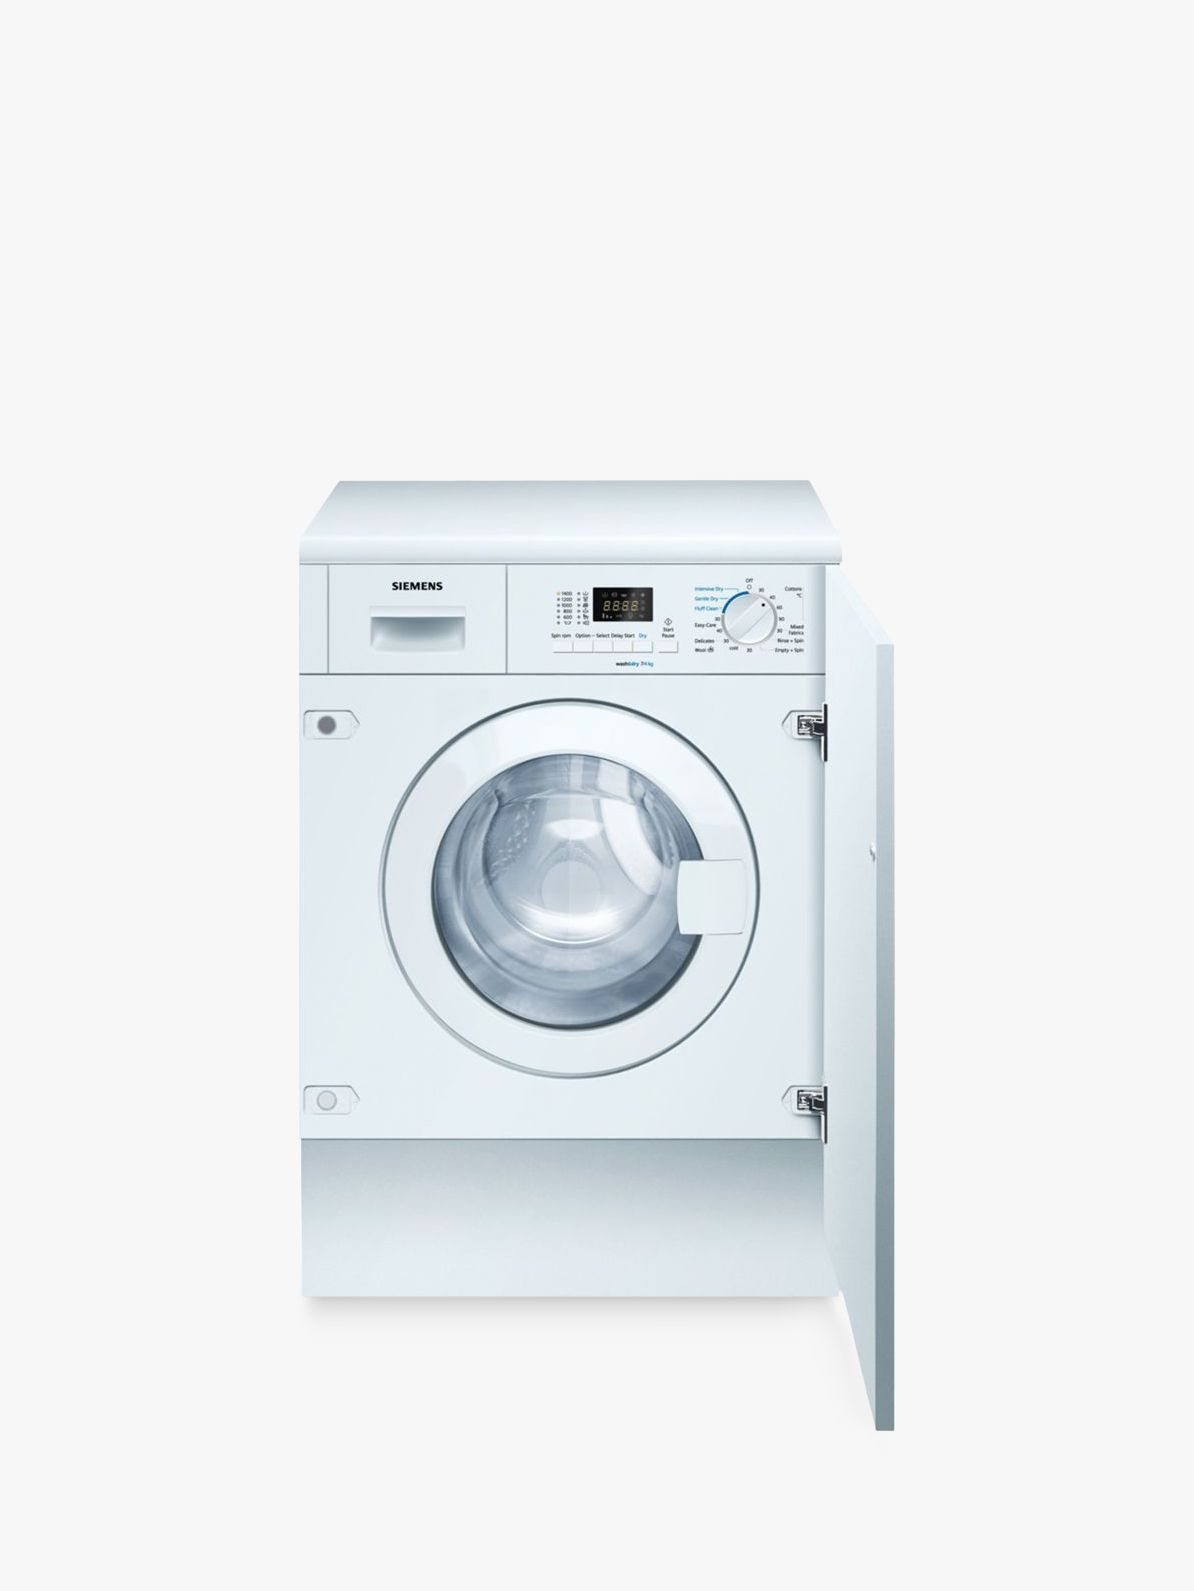 Siemens Siemens WK14D321GB iQ300 Integrated Washer Dryer, 7kg Wash/4kg Dry Load, A Energy Rating, 1400rpm Spin